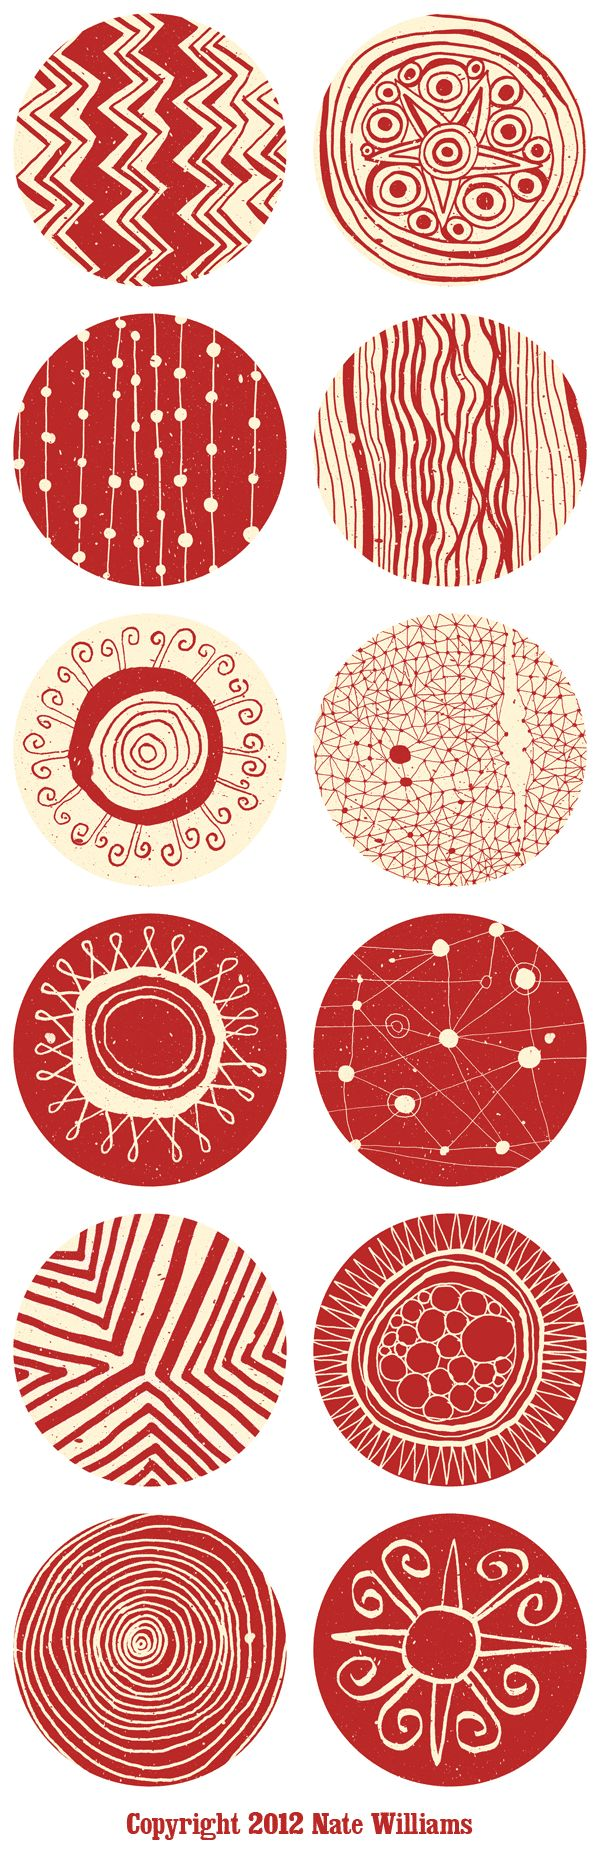 Nate Williams, Buenos Aires, Argentina. Hola Amiga Pillows. Circular surface design patterns for silkscreen.